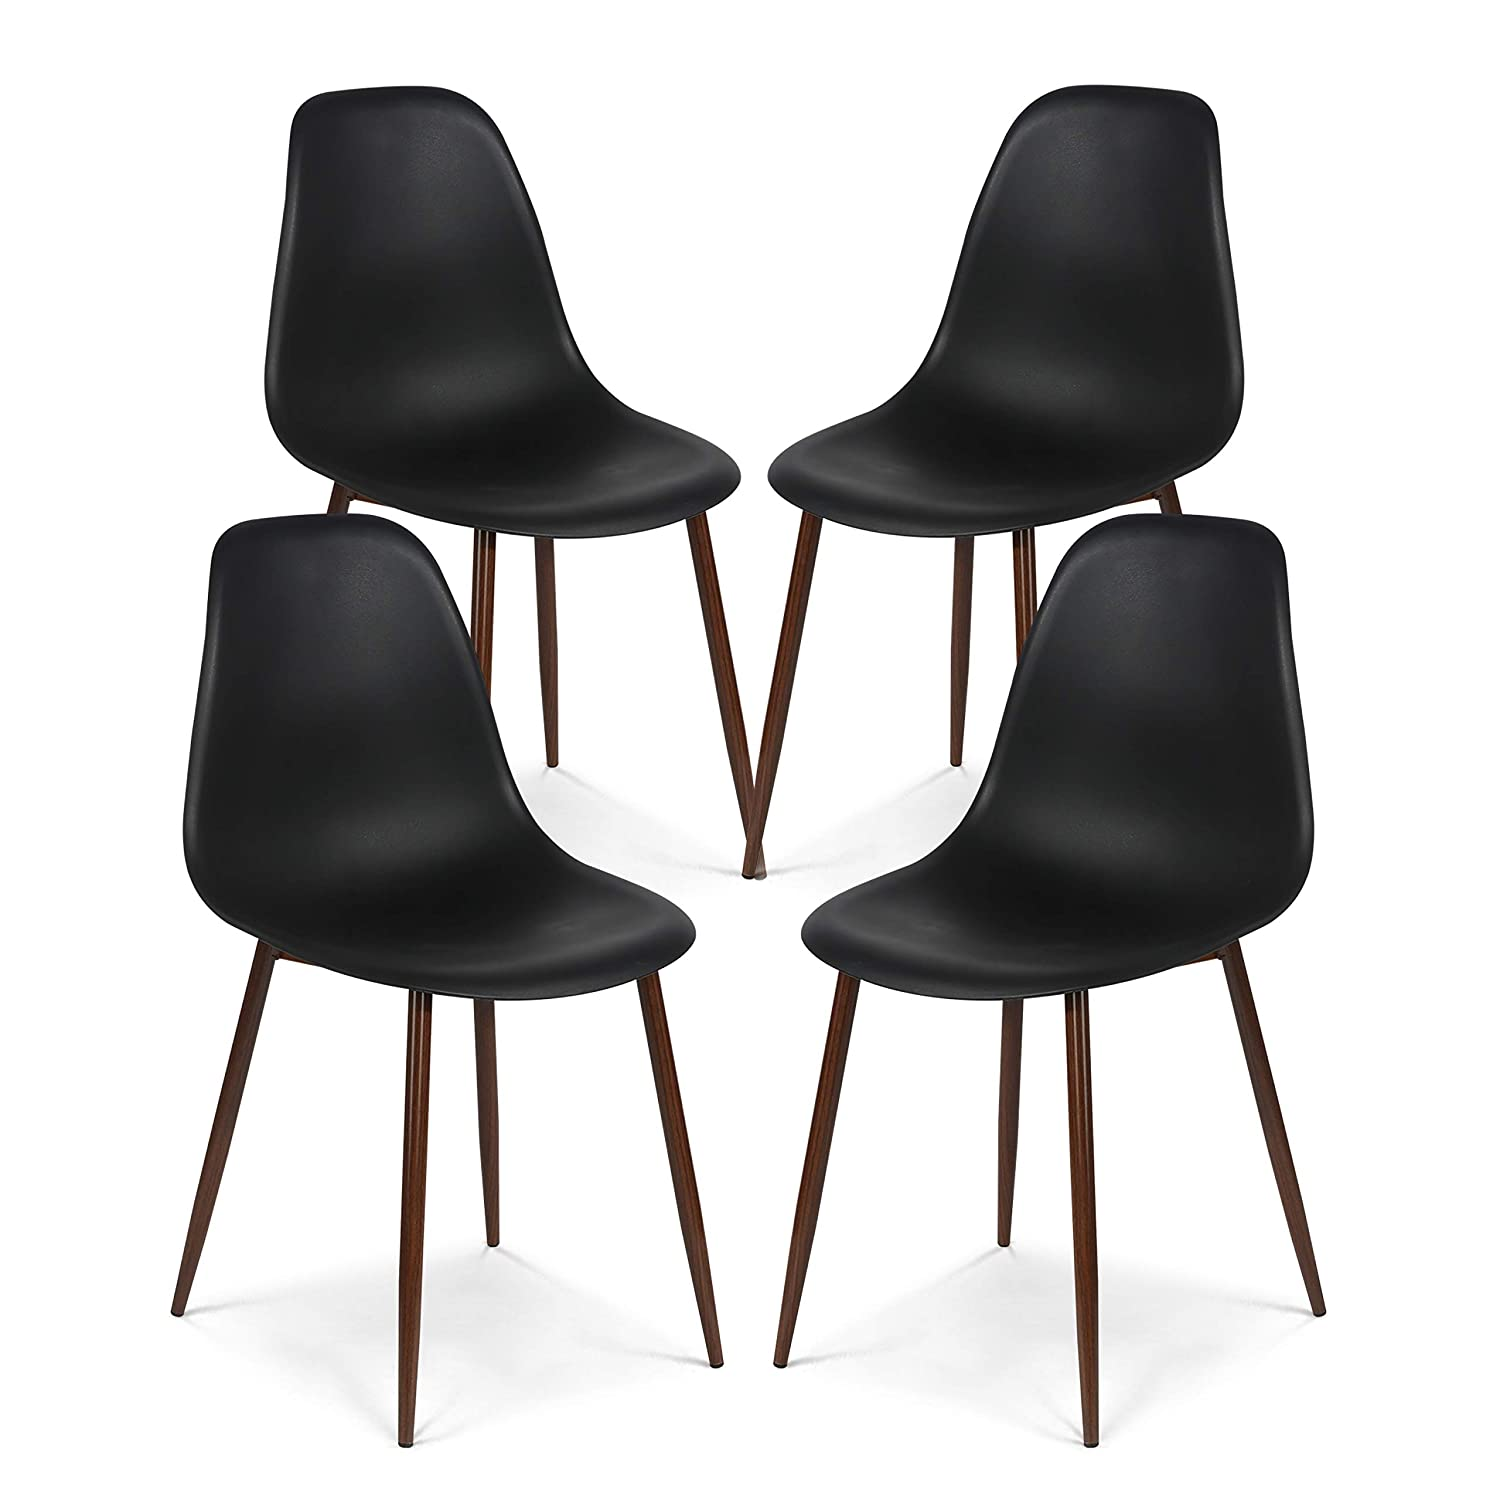 Poly and Bark Landon Contemporary Kitchen Dining Sculpted Mid-Century Side Chair in Black (Set of 4)